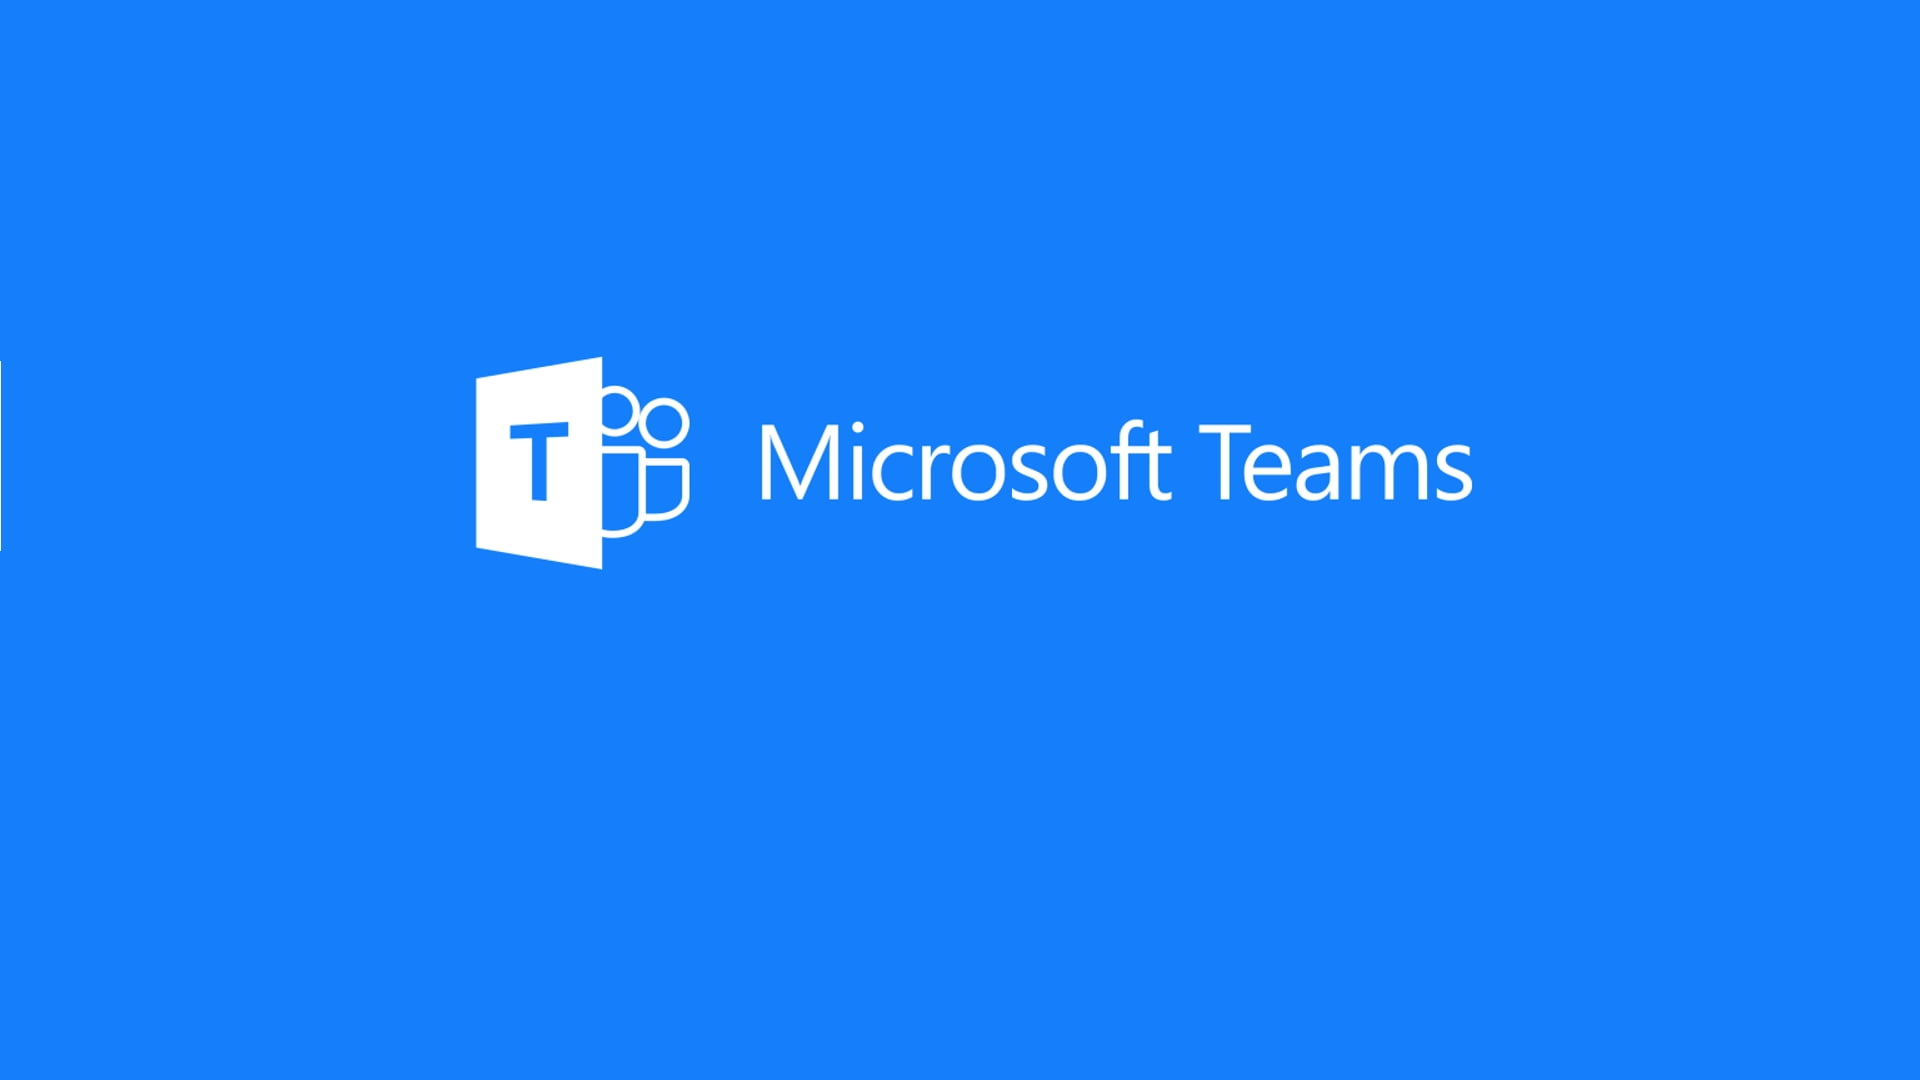 Microsoft Teams llega a Windows 10 Mobile y Android